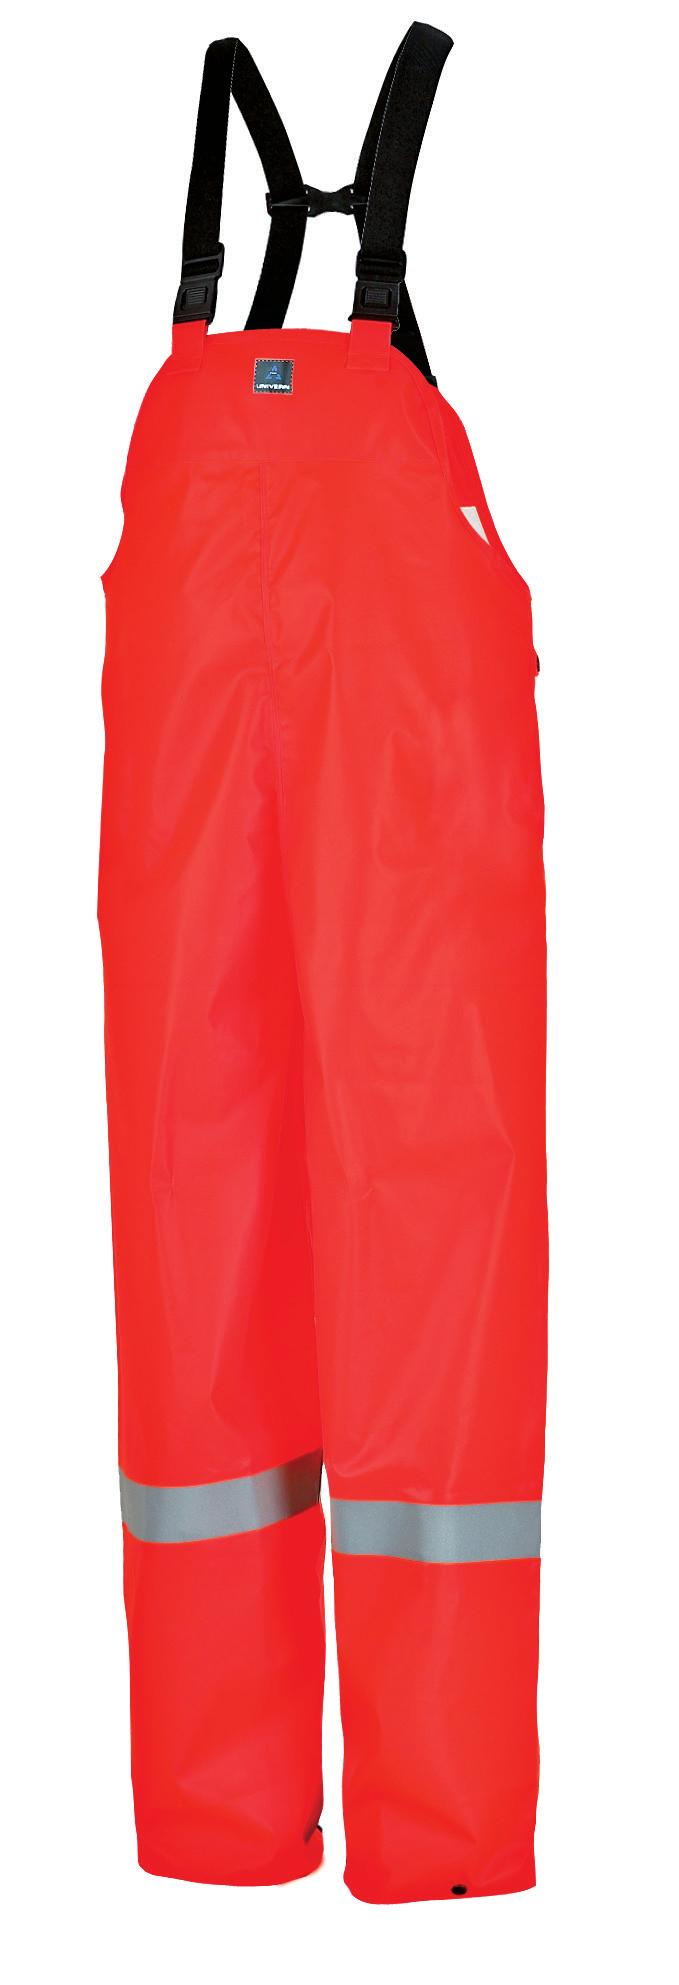 FR5513-05 Orange Reversible trousers 5 cm grey reflective strip around legs Sizes S-XXXL Quality: Flame retardant PU on knit polyester Weight: 180 gram/m 2 CE: EN ISO 14116 EN 343 Offshore flame